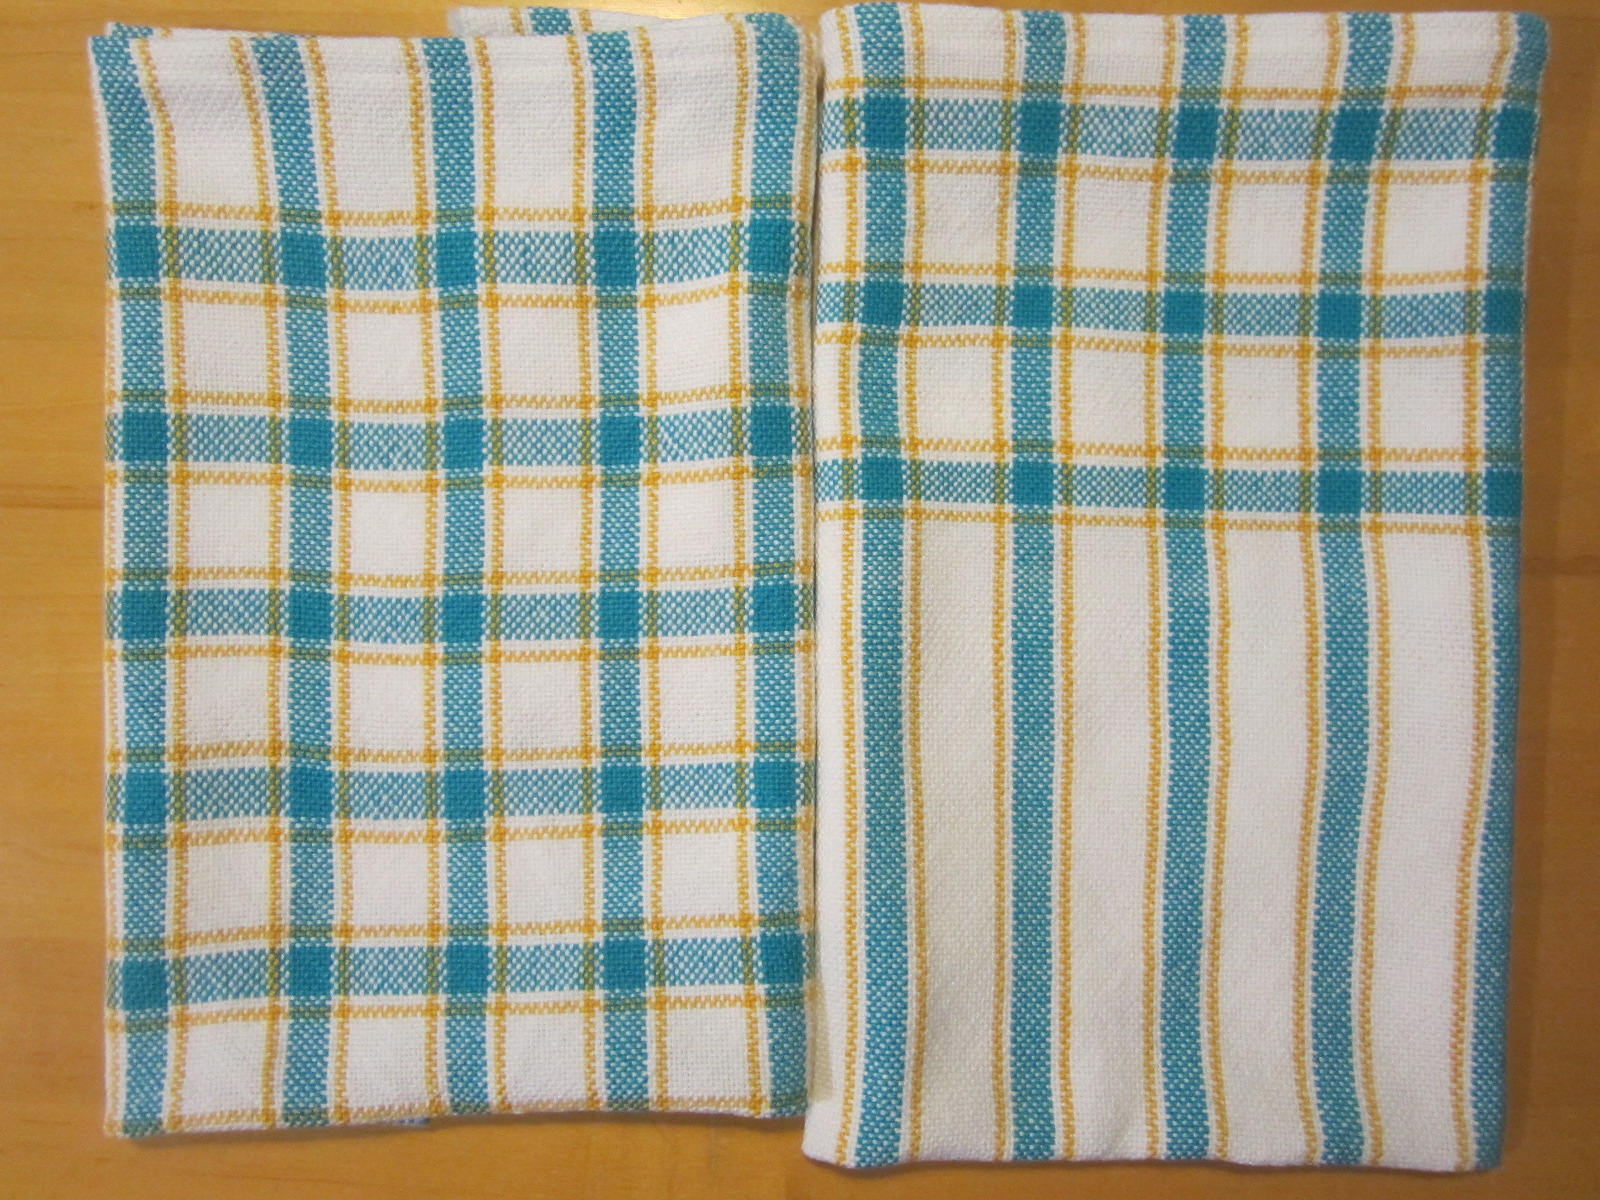 My two hand-woven towels